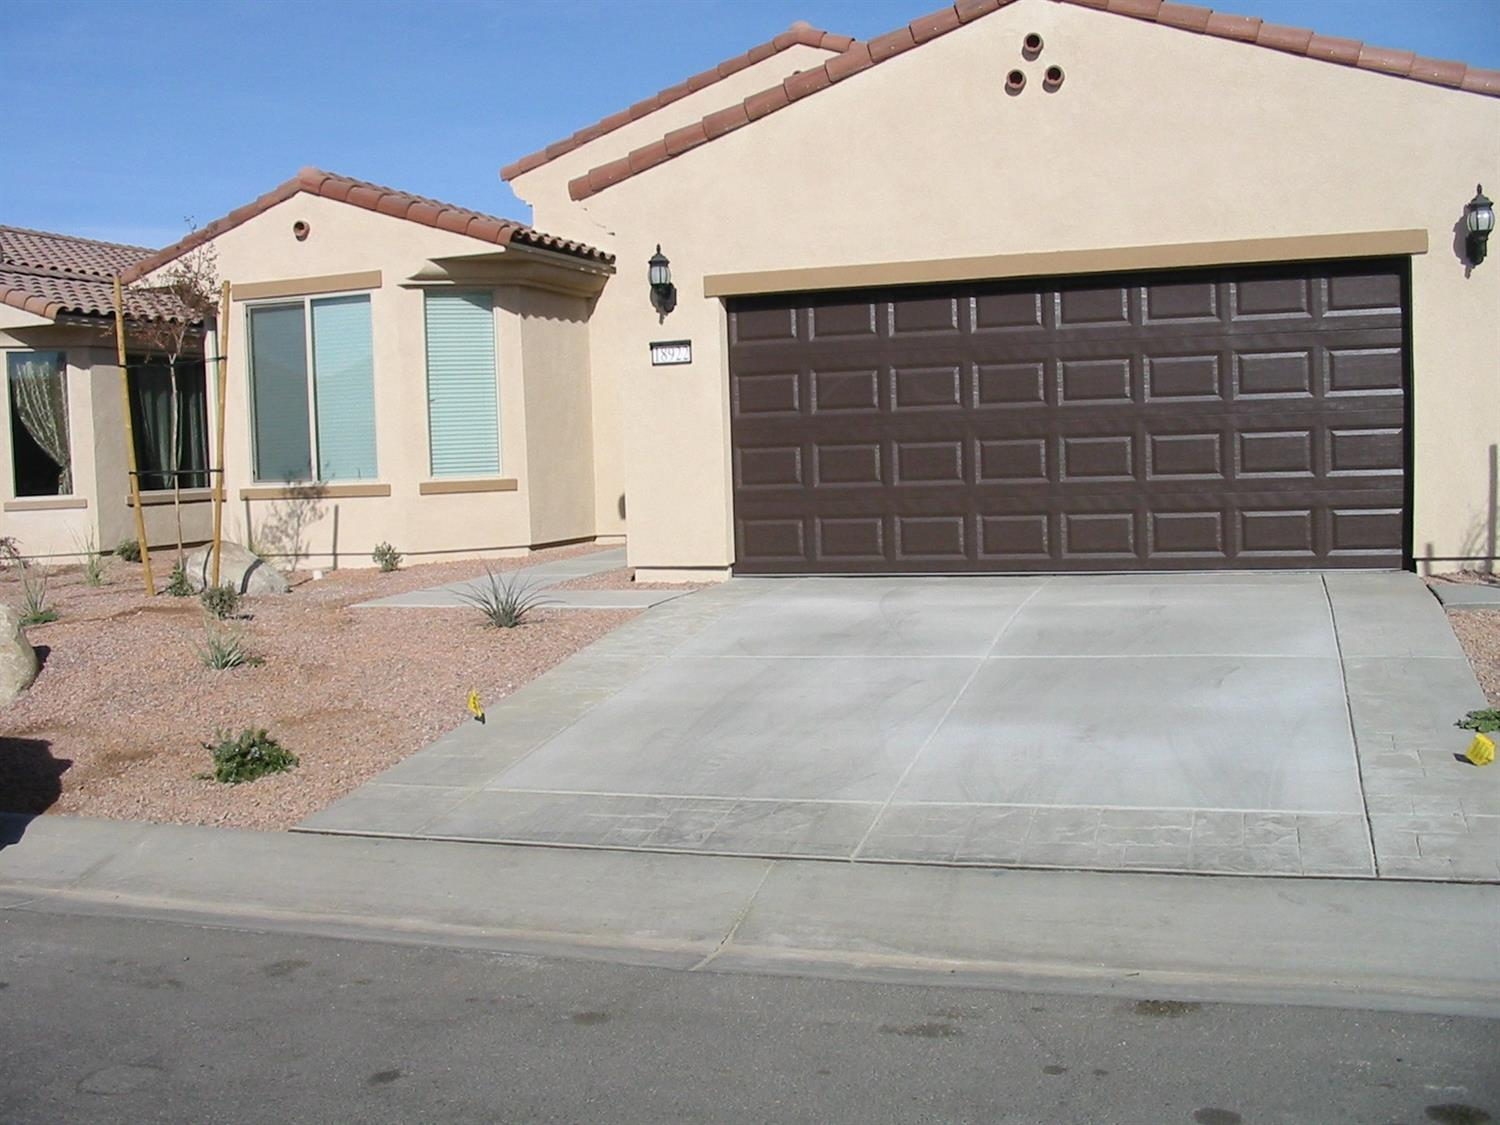 All homes for sale 55places 18922 copper street apple valley ca 92308 malvernweather Choice Image